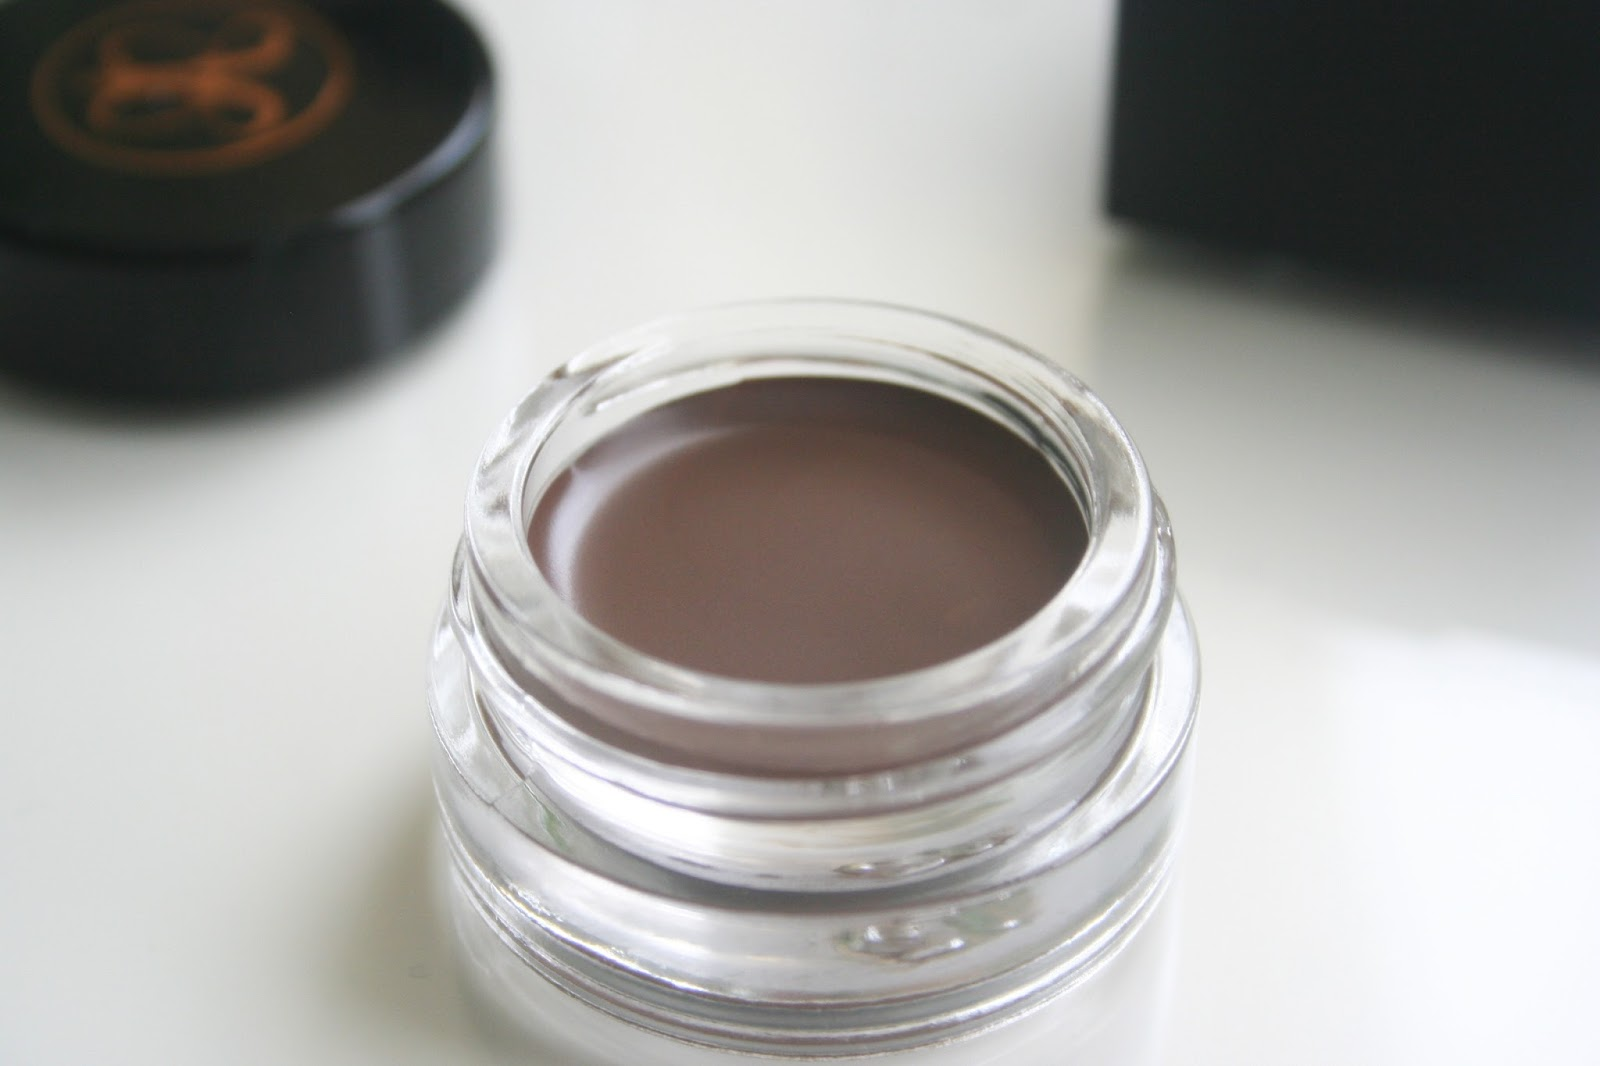 Anastasia_Beverly_Hills_Dipbrow_Pomade_Chocolate